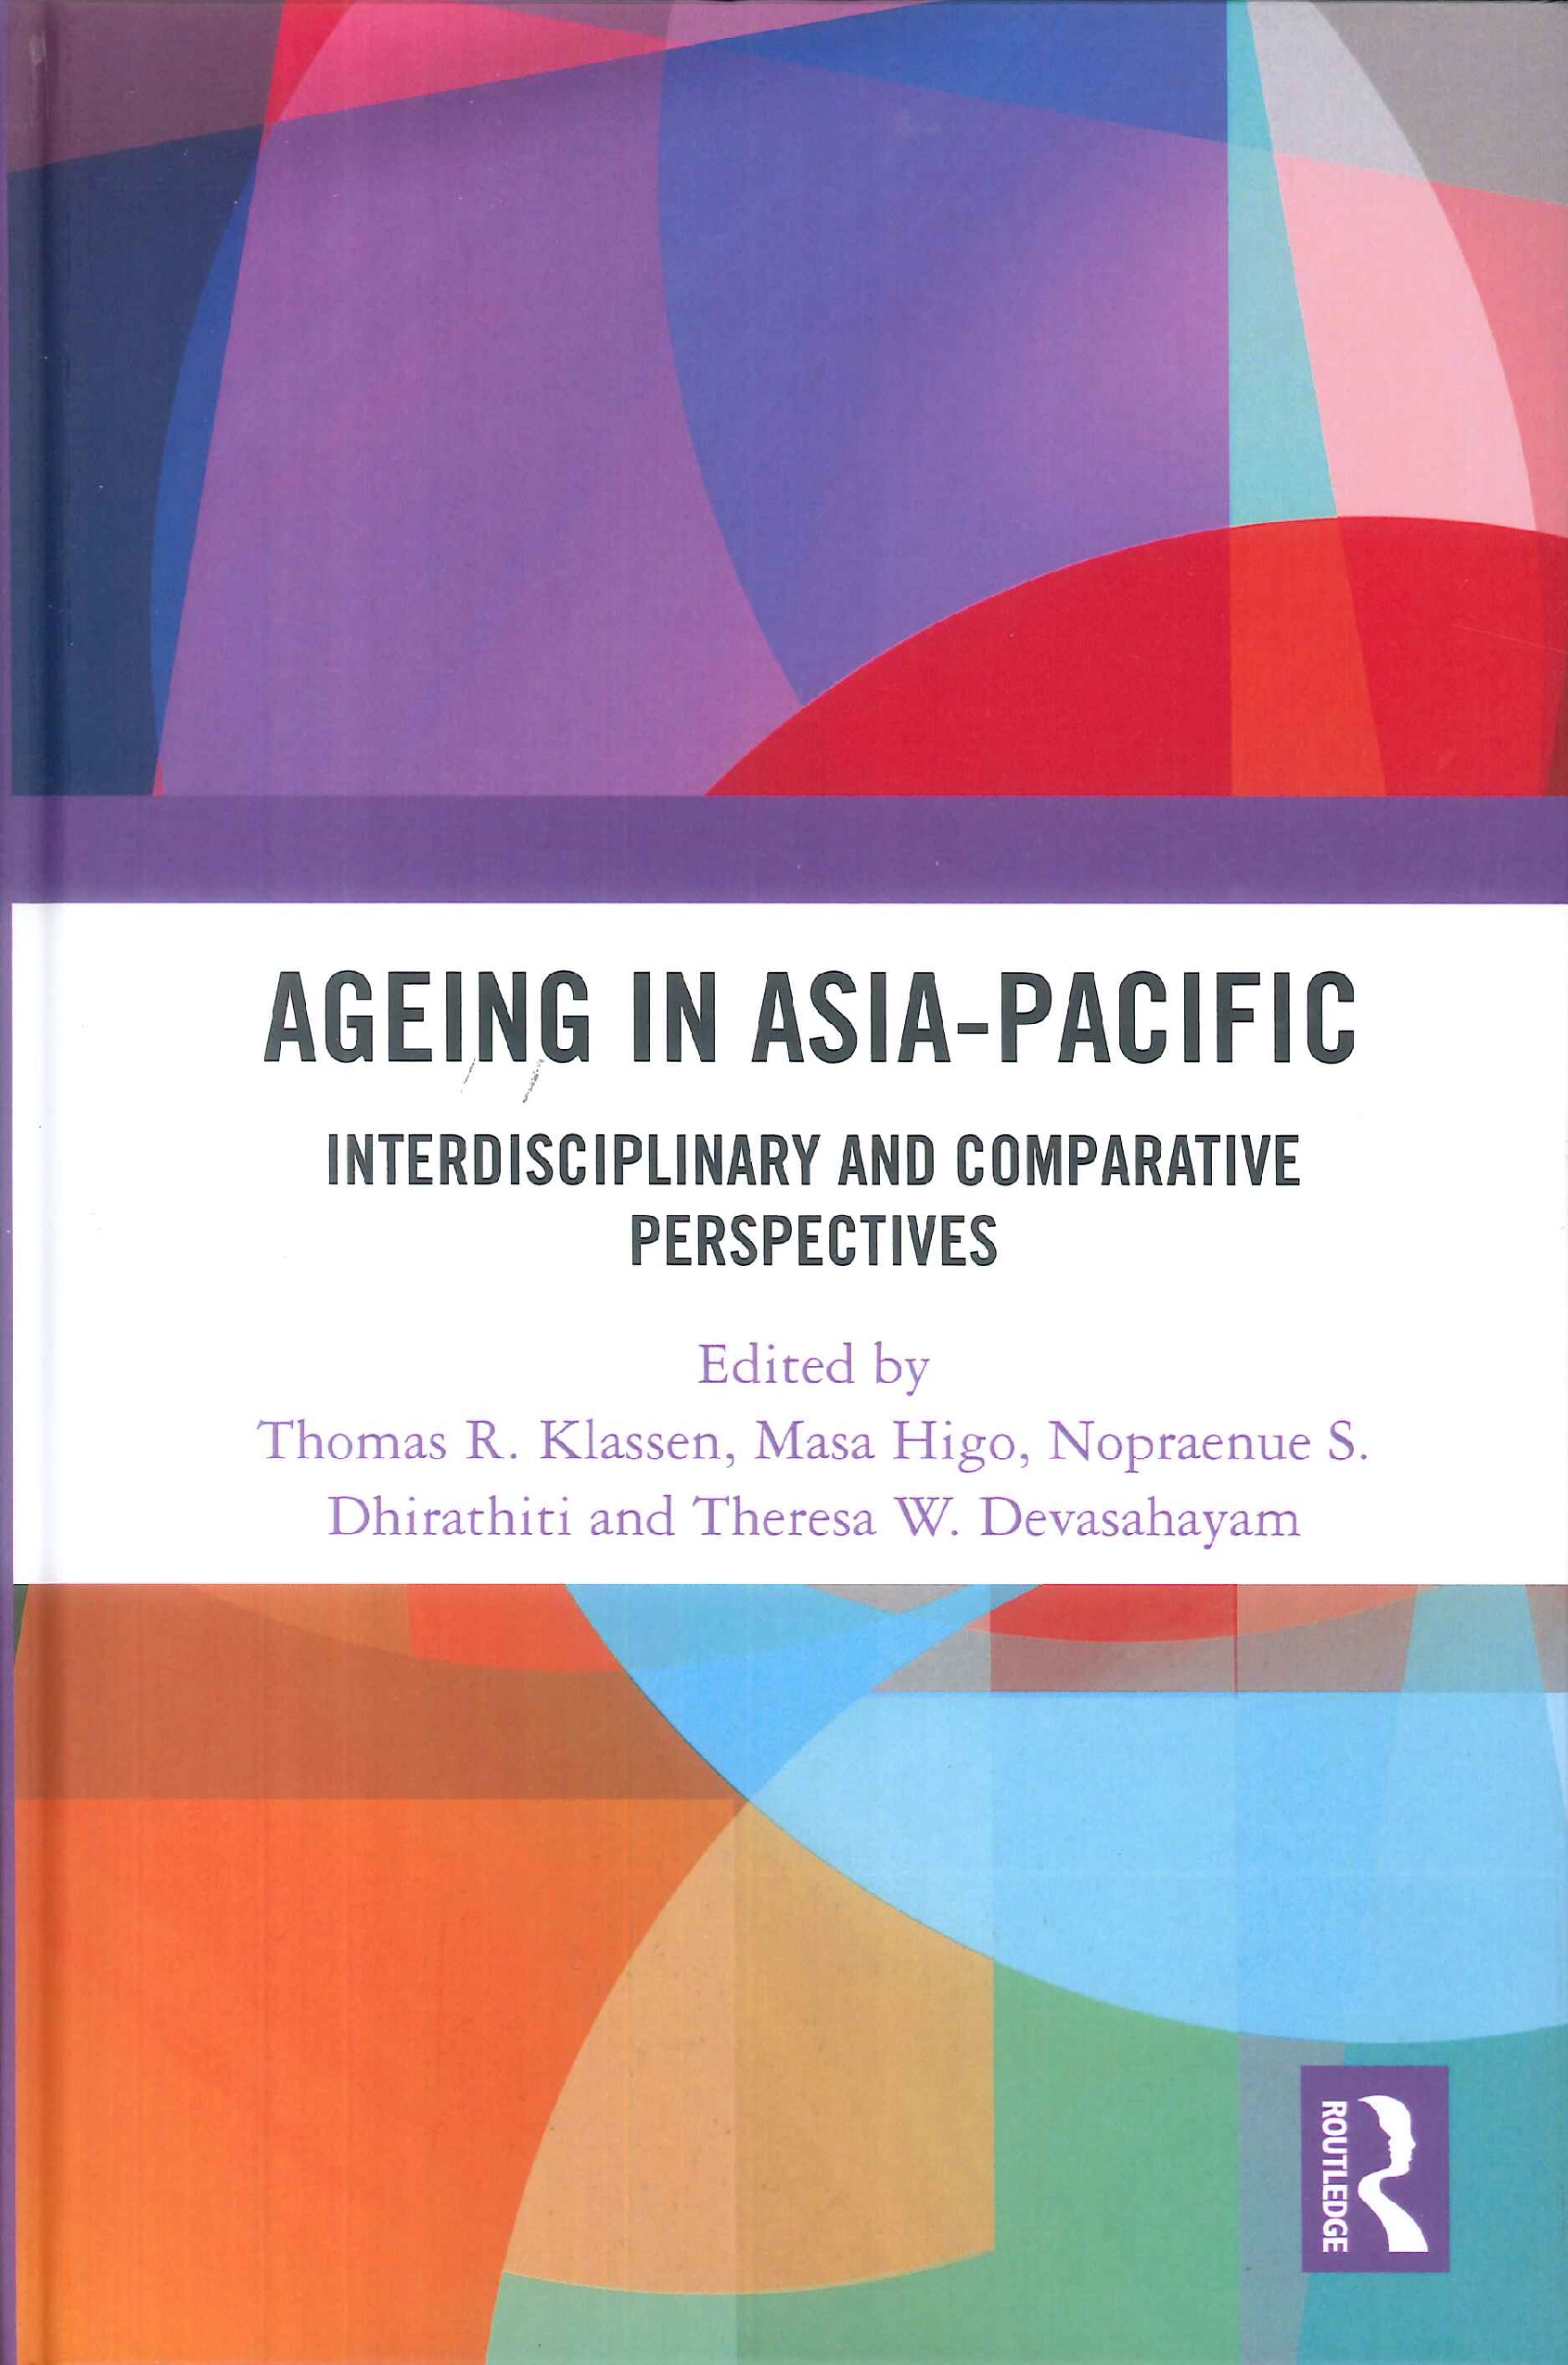 Ageing in Asia-Pacific:interdisciplinary and comparative perspectives